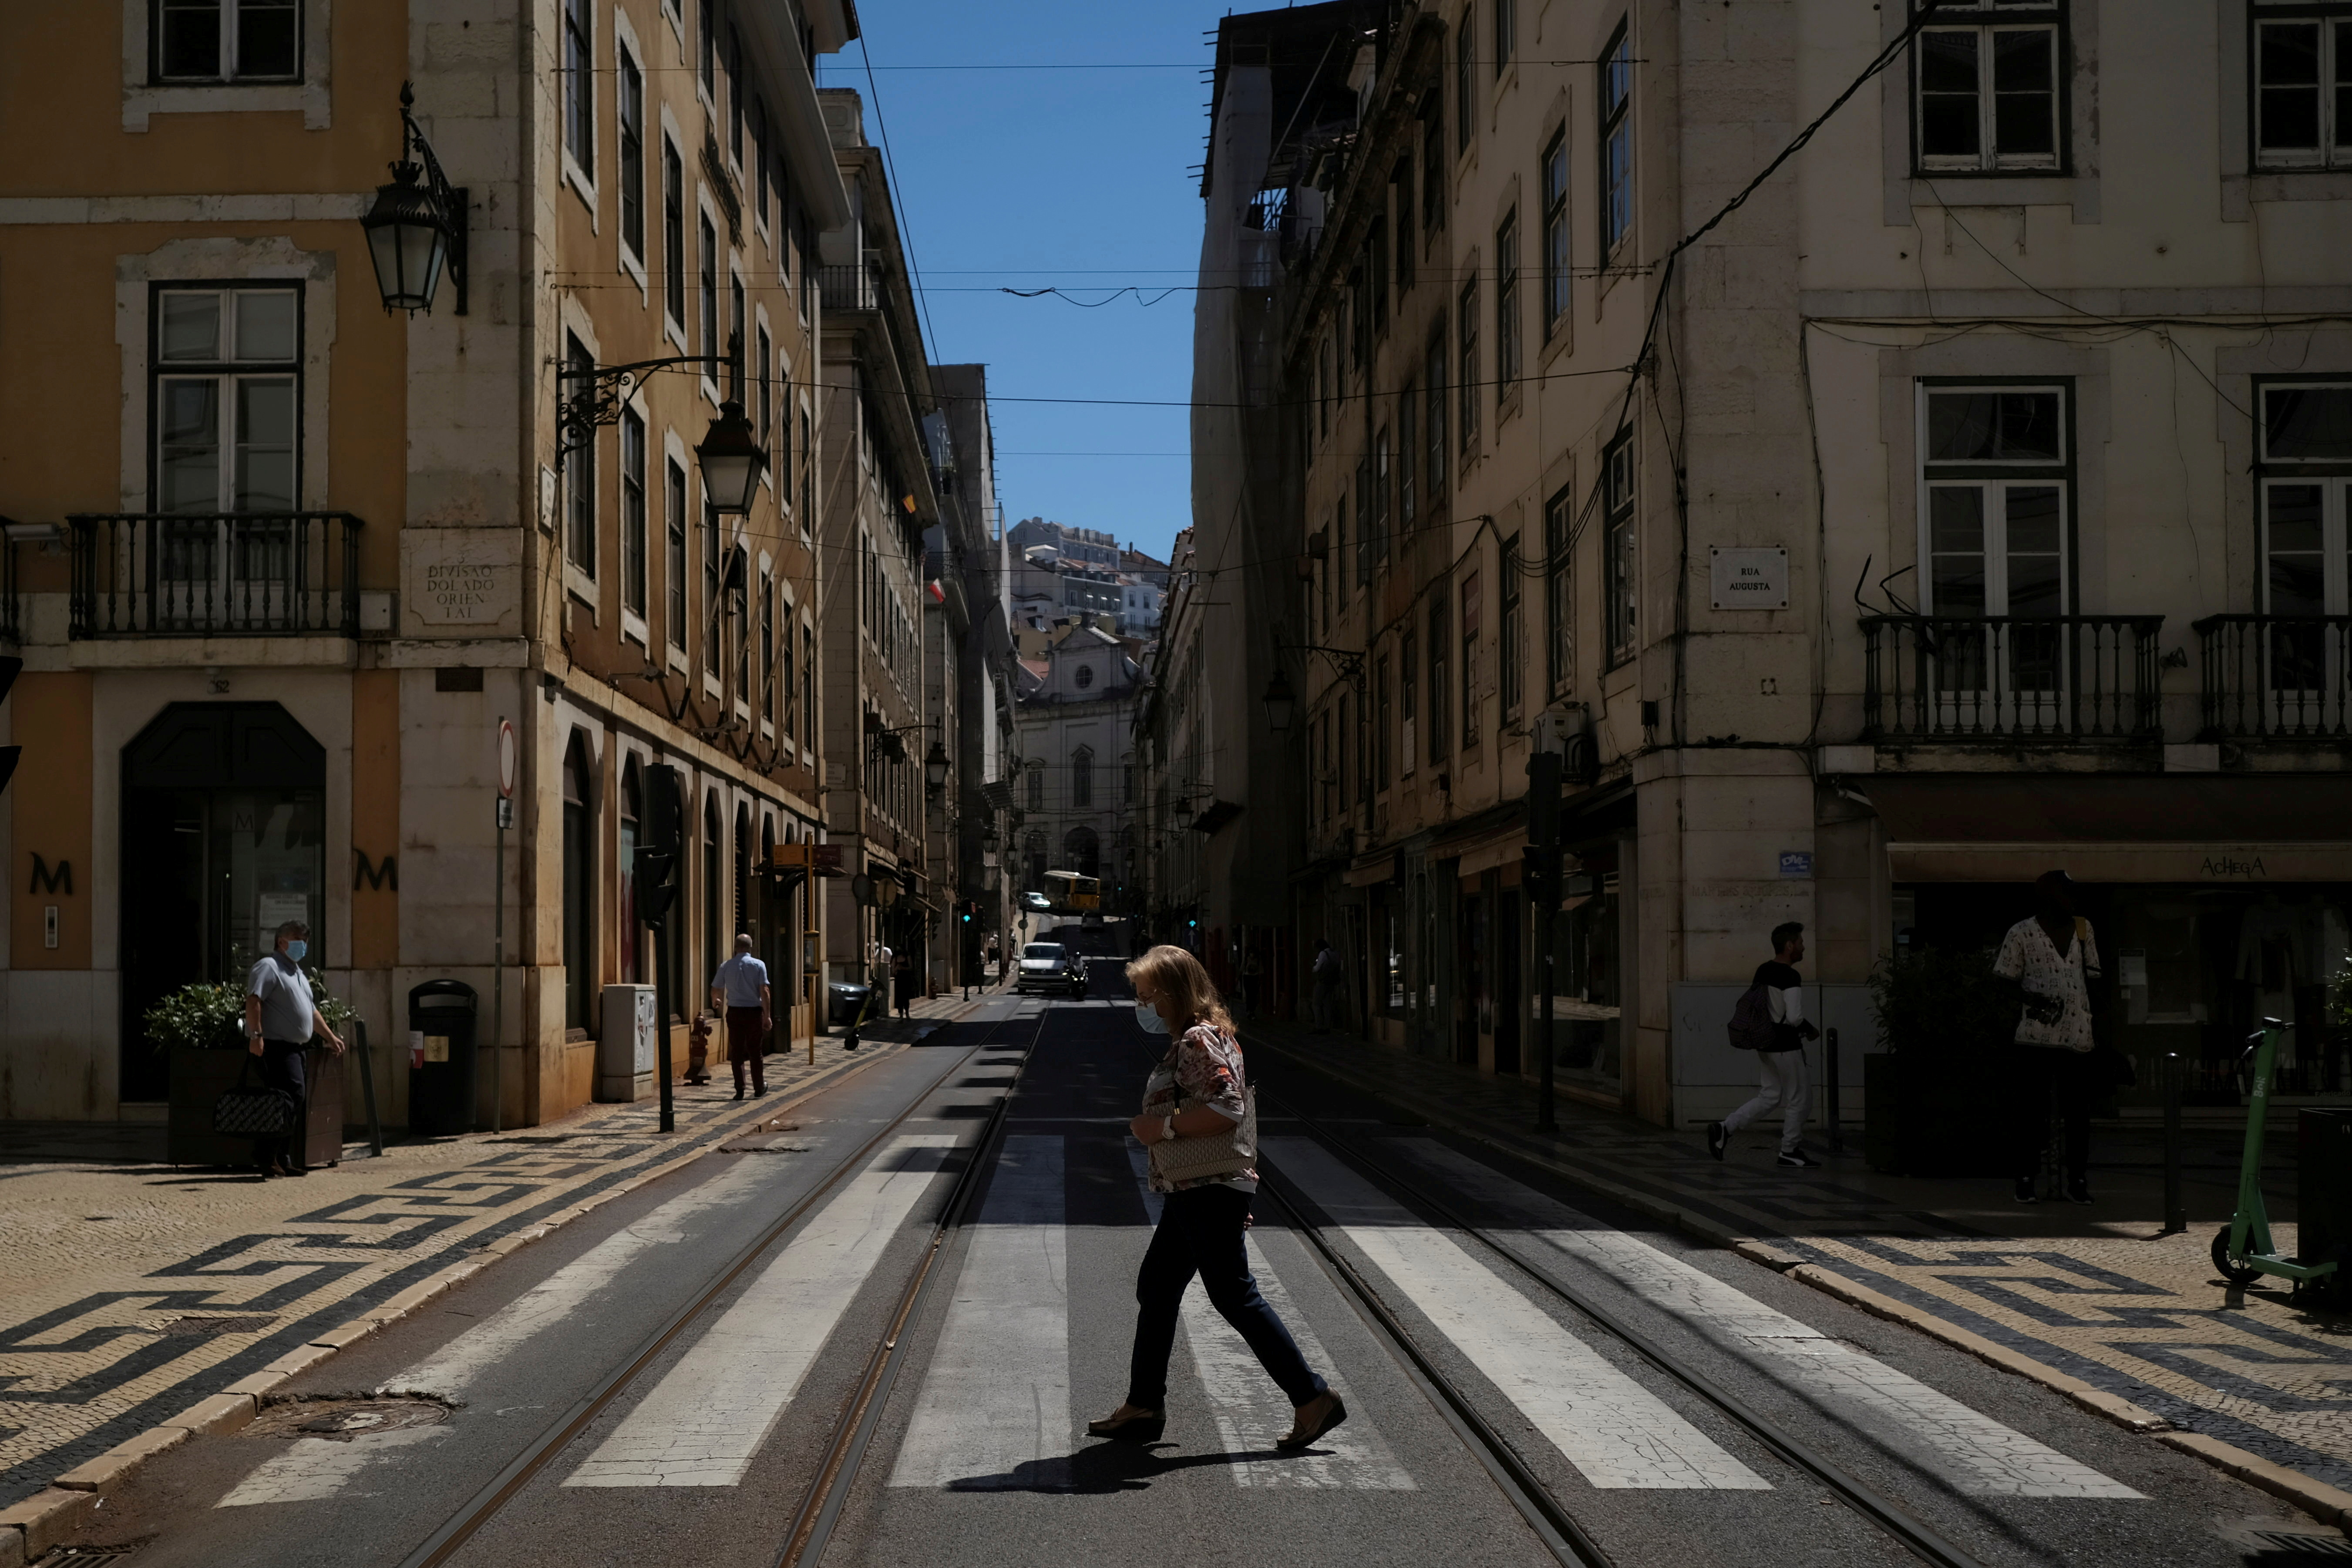 A person wearing a protective mask walks in Lisbon downtown amid the coronavirus disease (COVID-19) pandemic, in Lisbon, Portugal, June 24, 2021. REUTERS/Pedro Nunes/File Photo